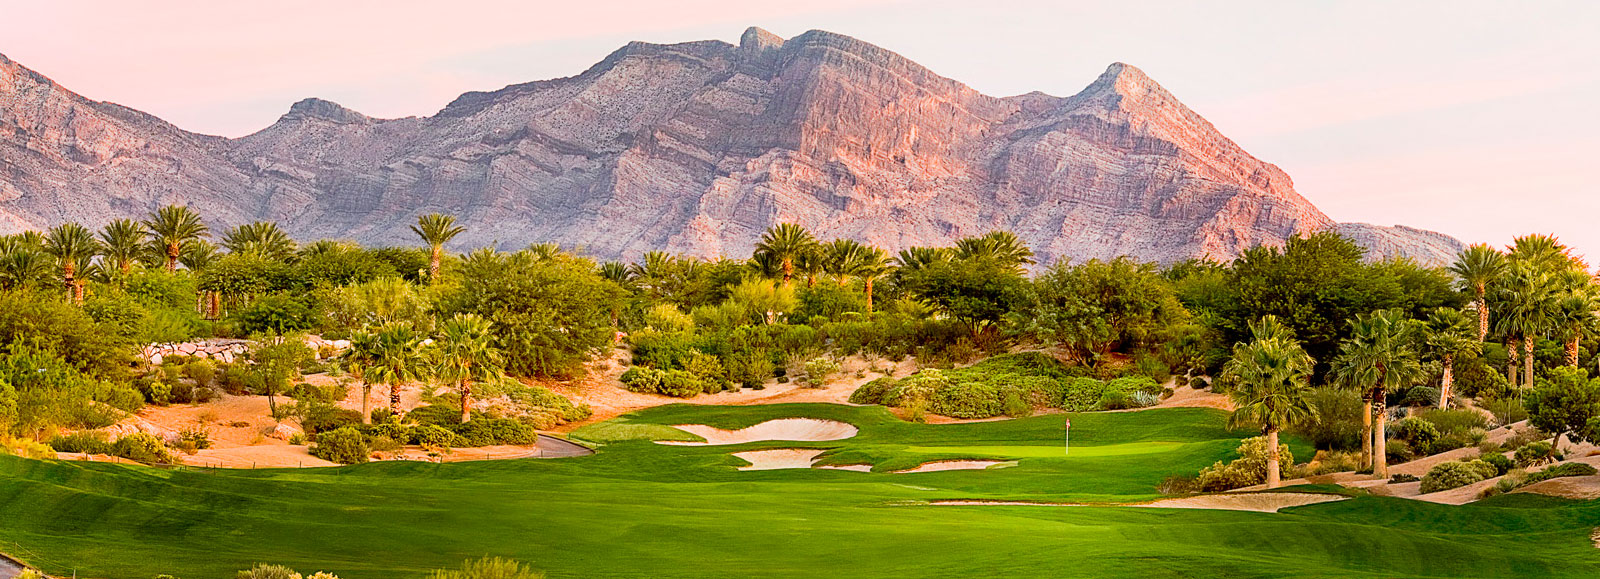 The Arroyo Golf Club